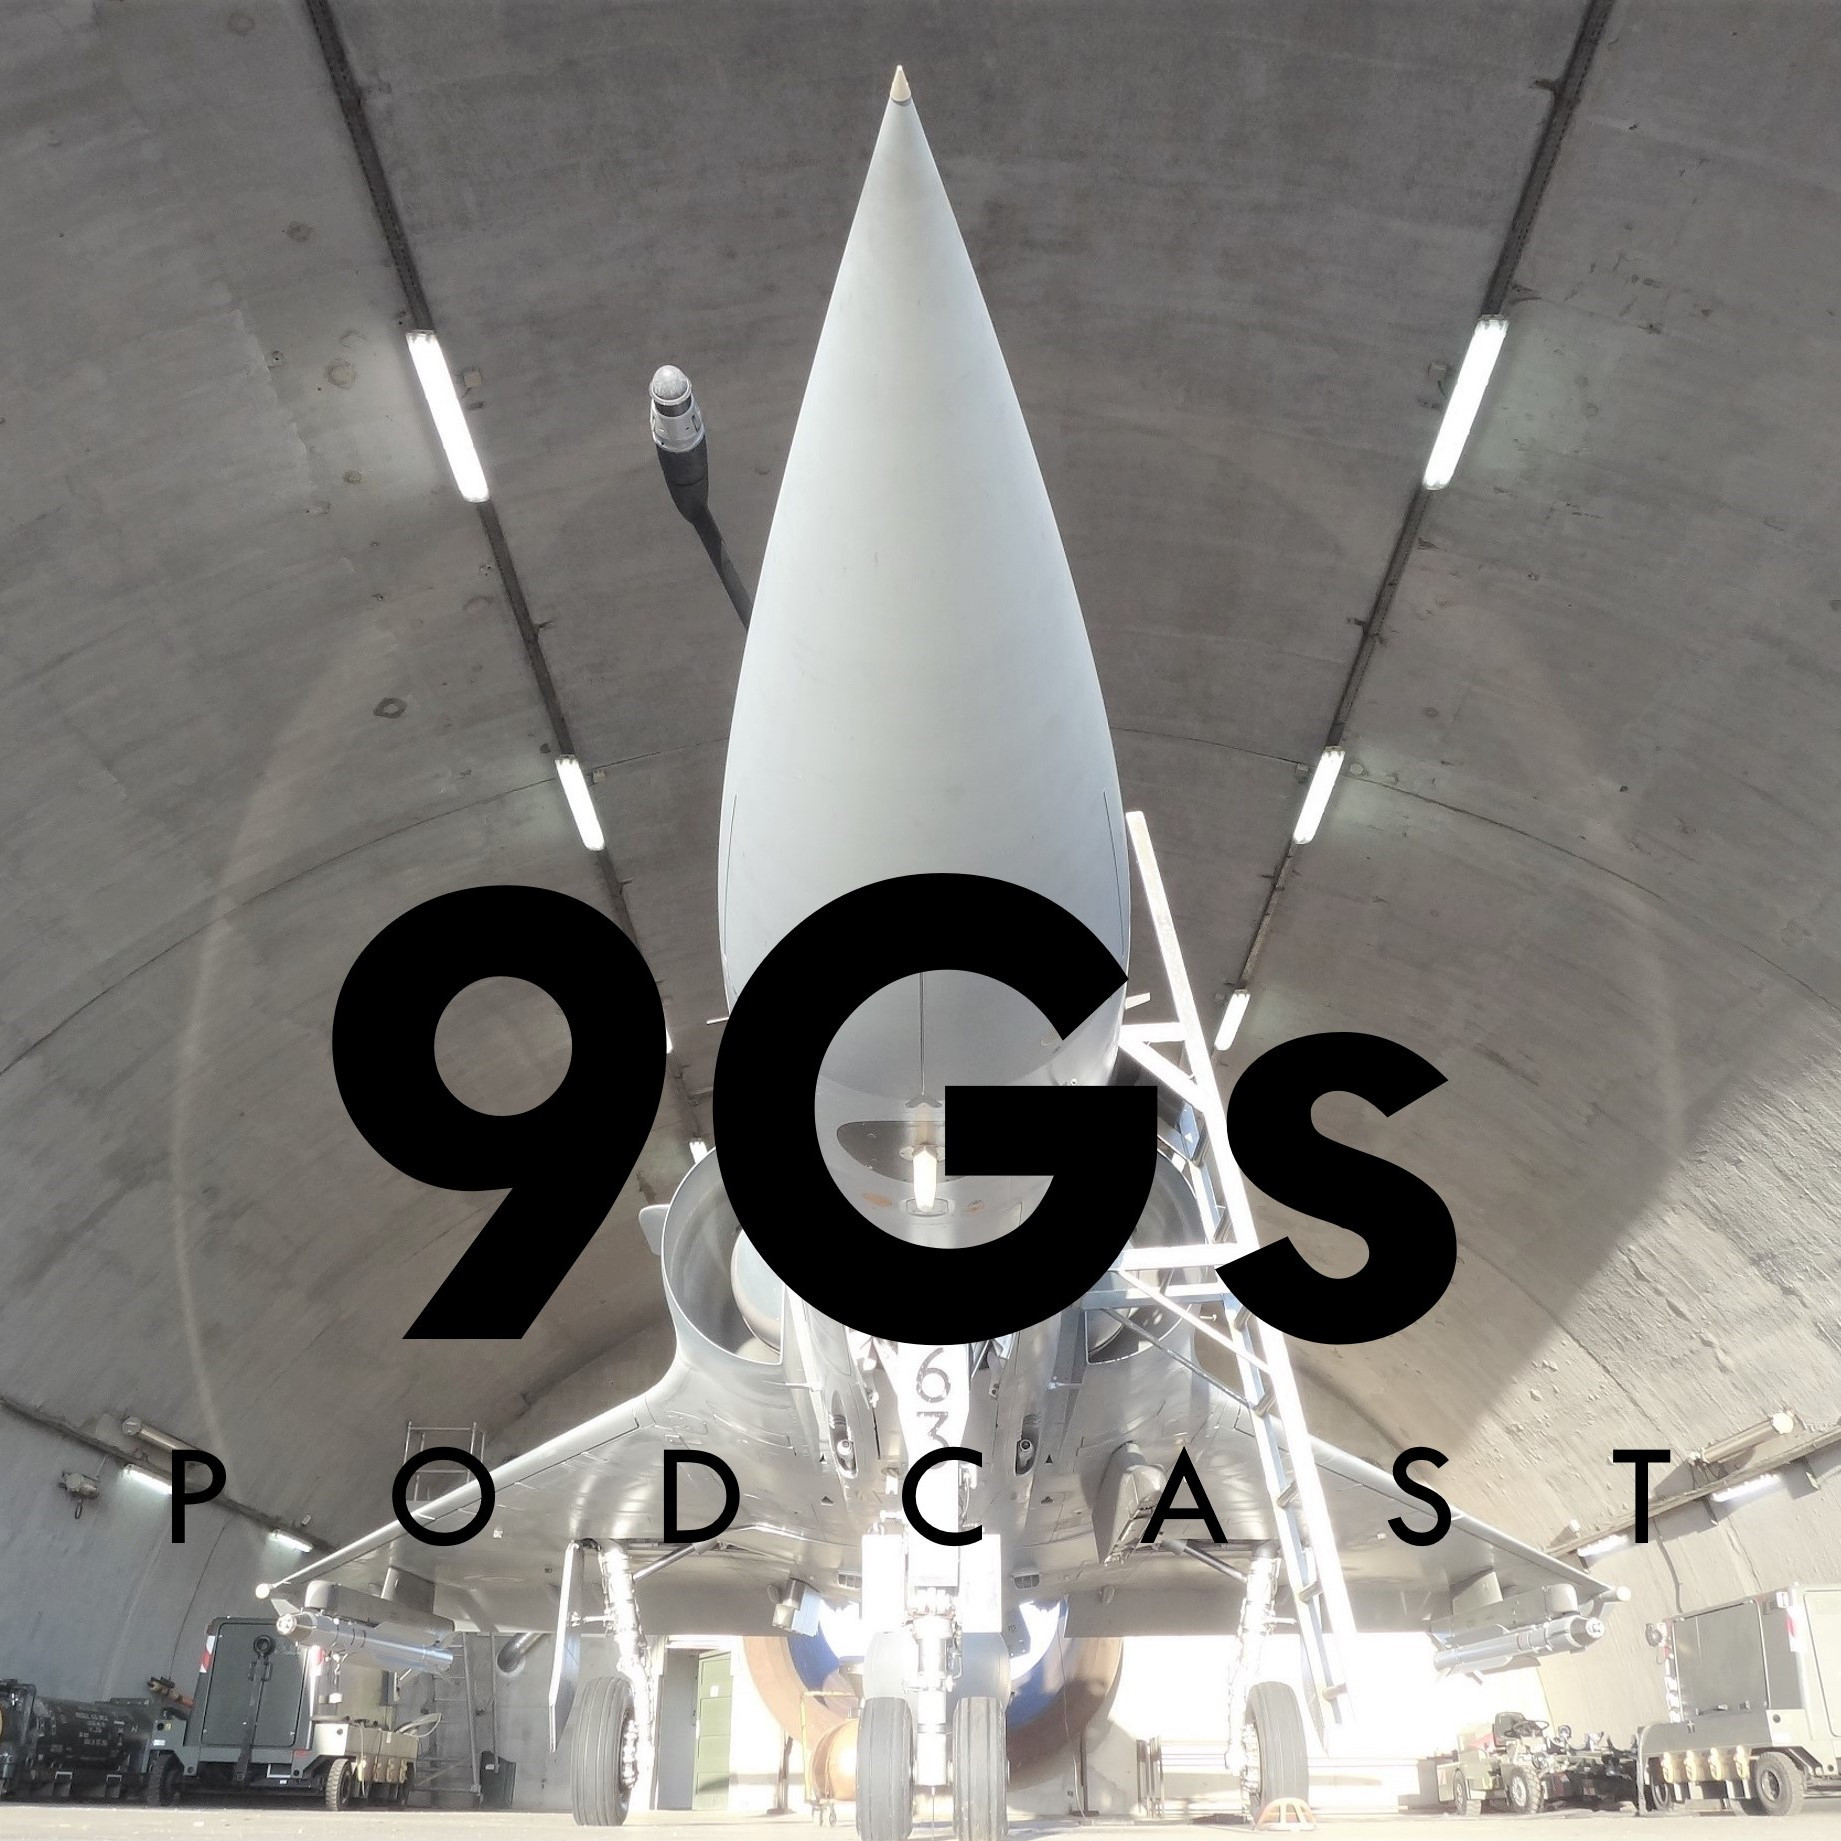 The 9Gs Podcast - An Aviation Podcast